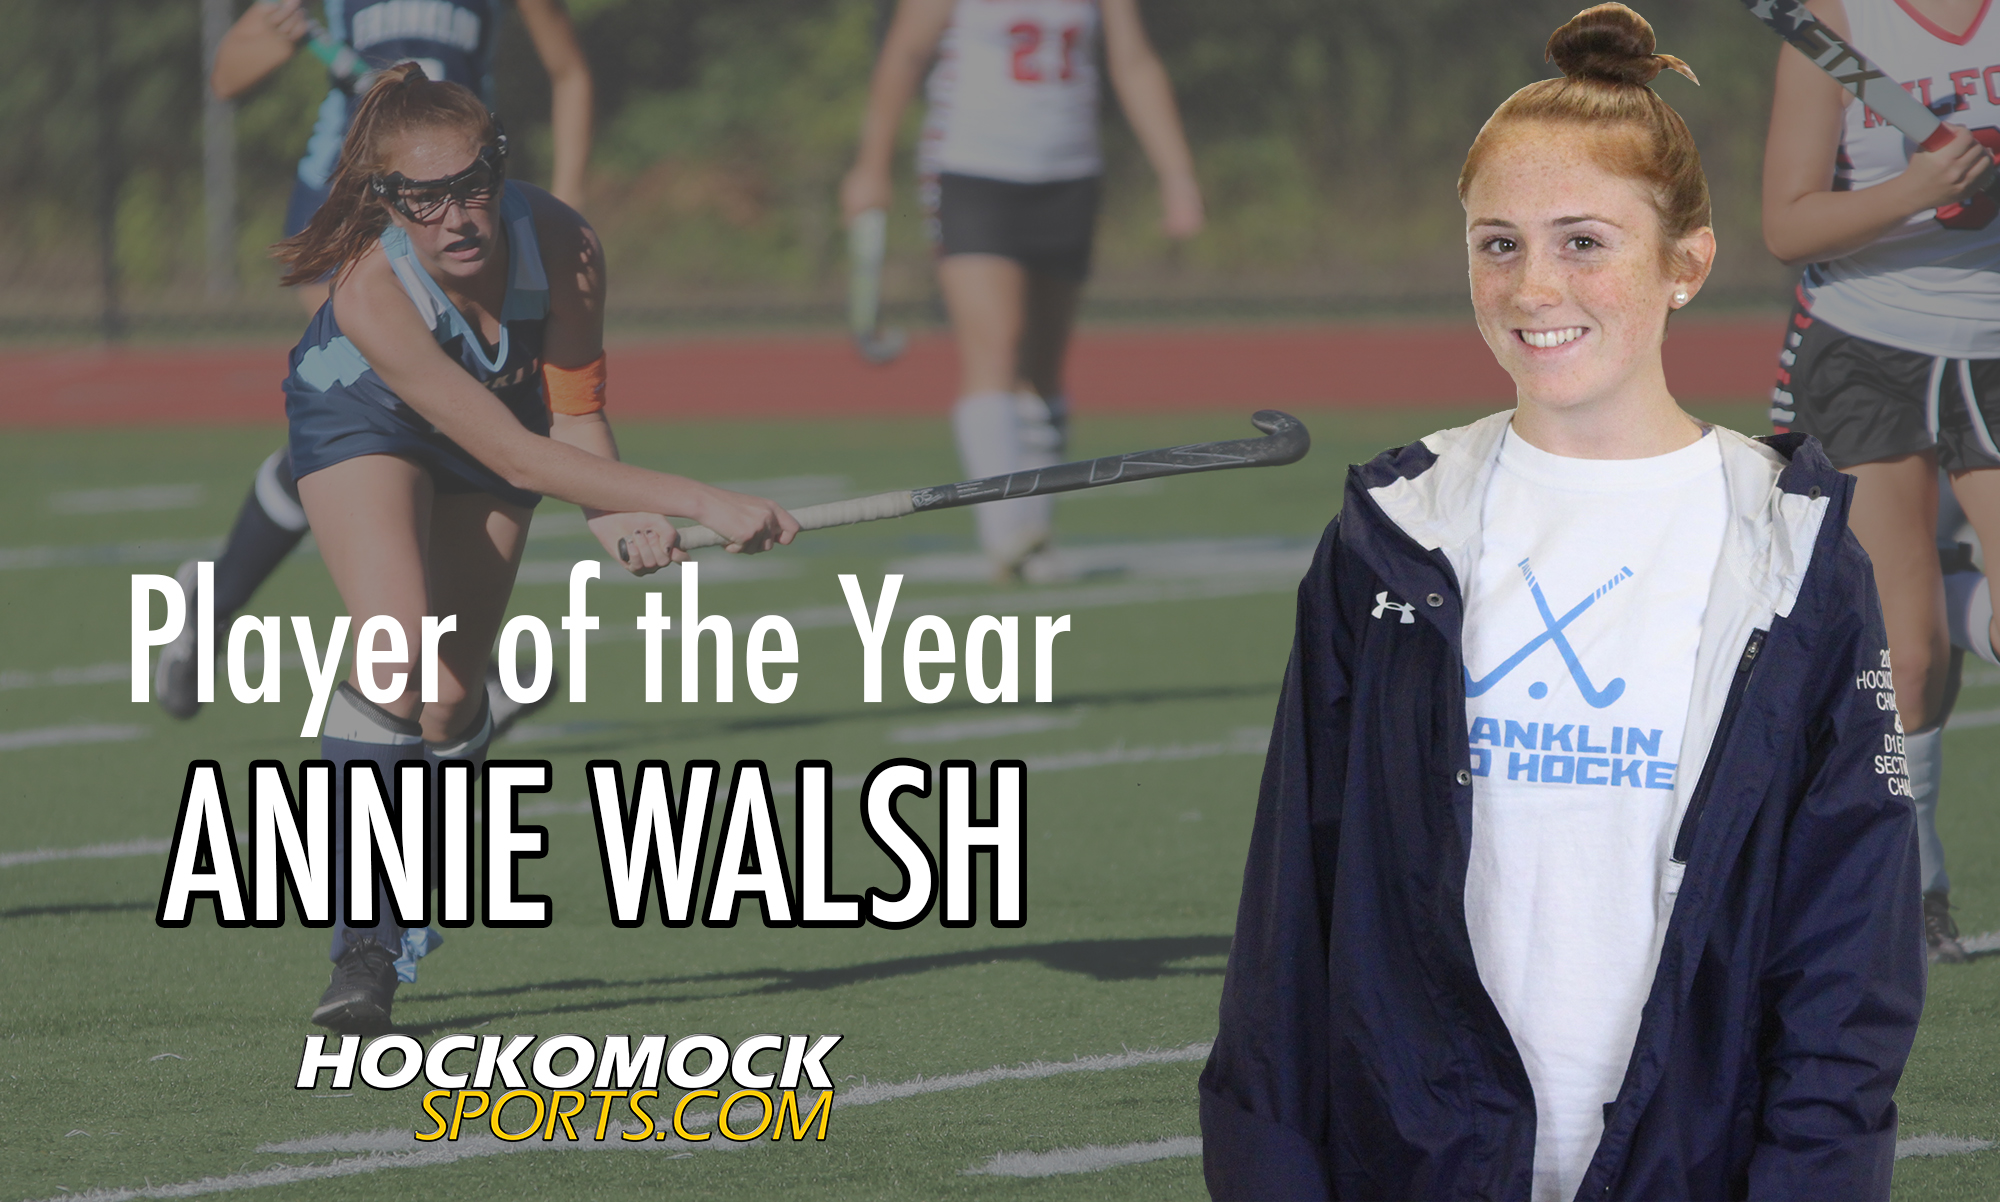 2016 HockomockSports.com Field Hockey Player of the Year